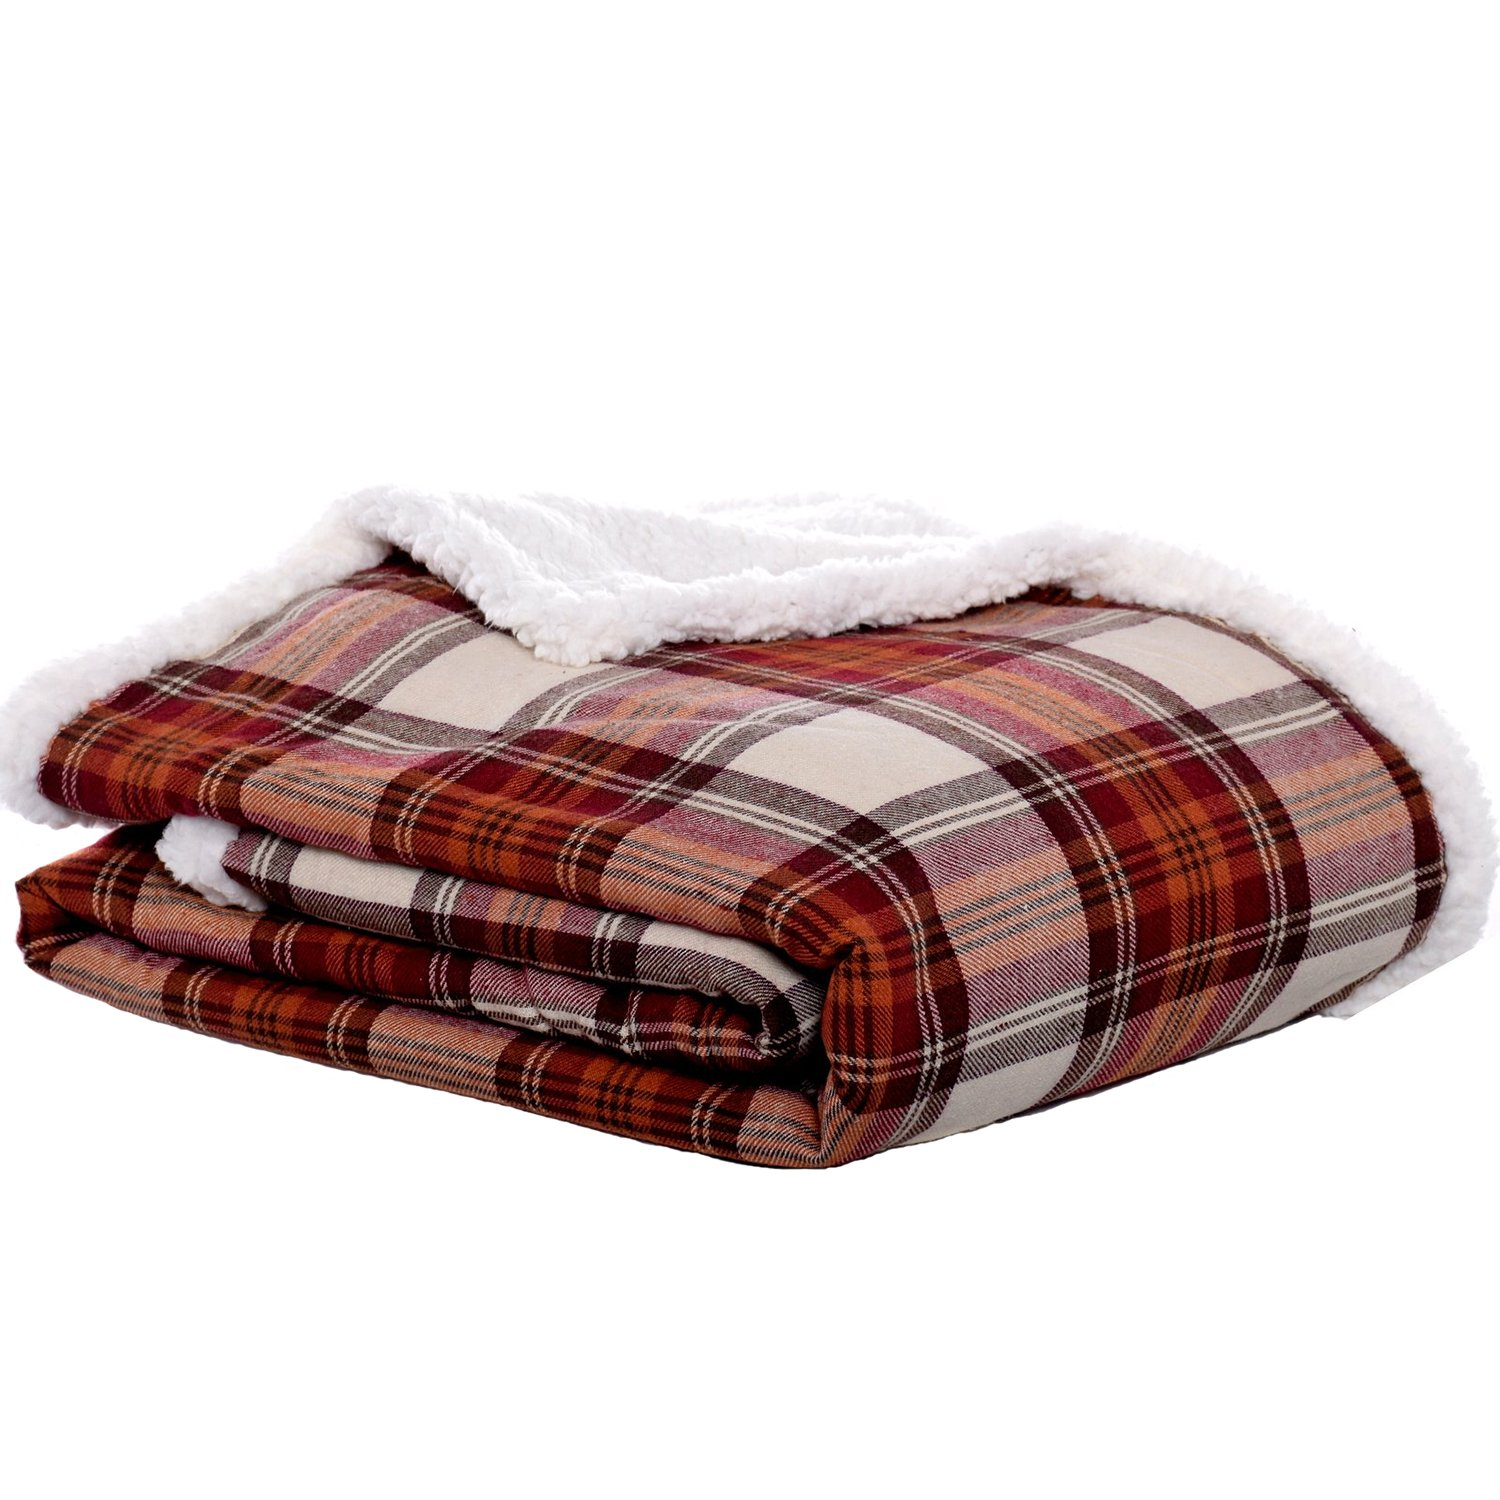 Eddie Bauer Edgewood Plaid Flannel Sherpa Throw Blanket, Red Revman International 201350